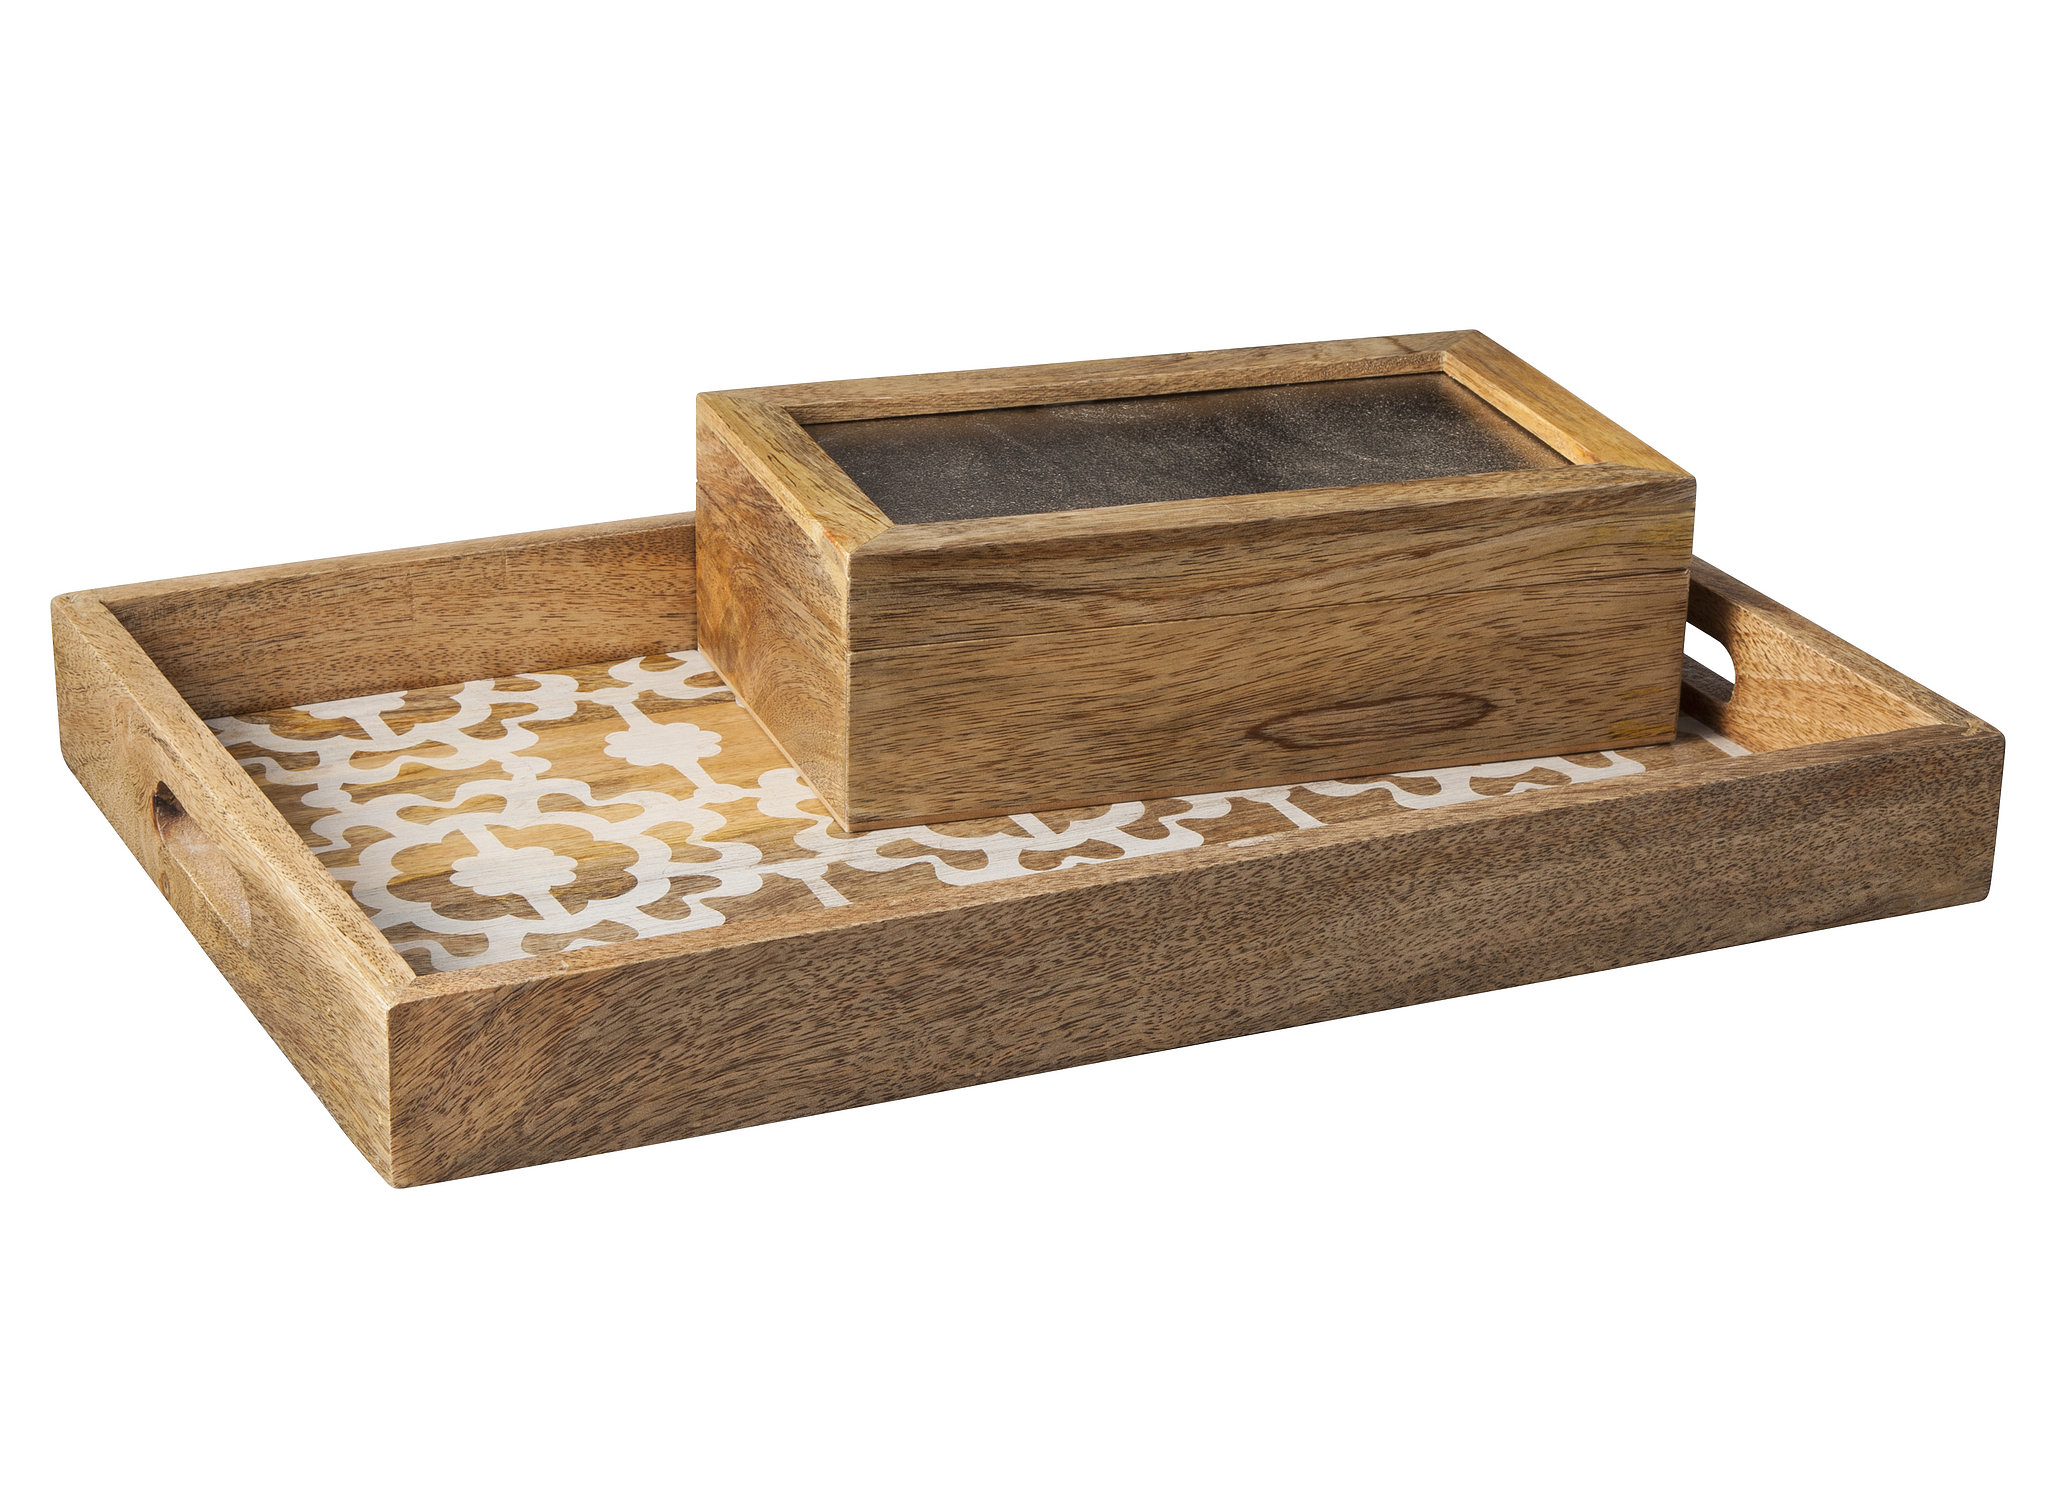 This patterned serving tray ($35) and painted box ($20) will allow you to organize in style.